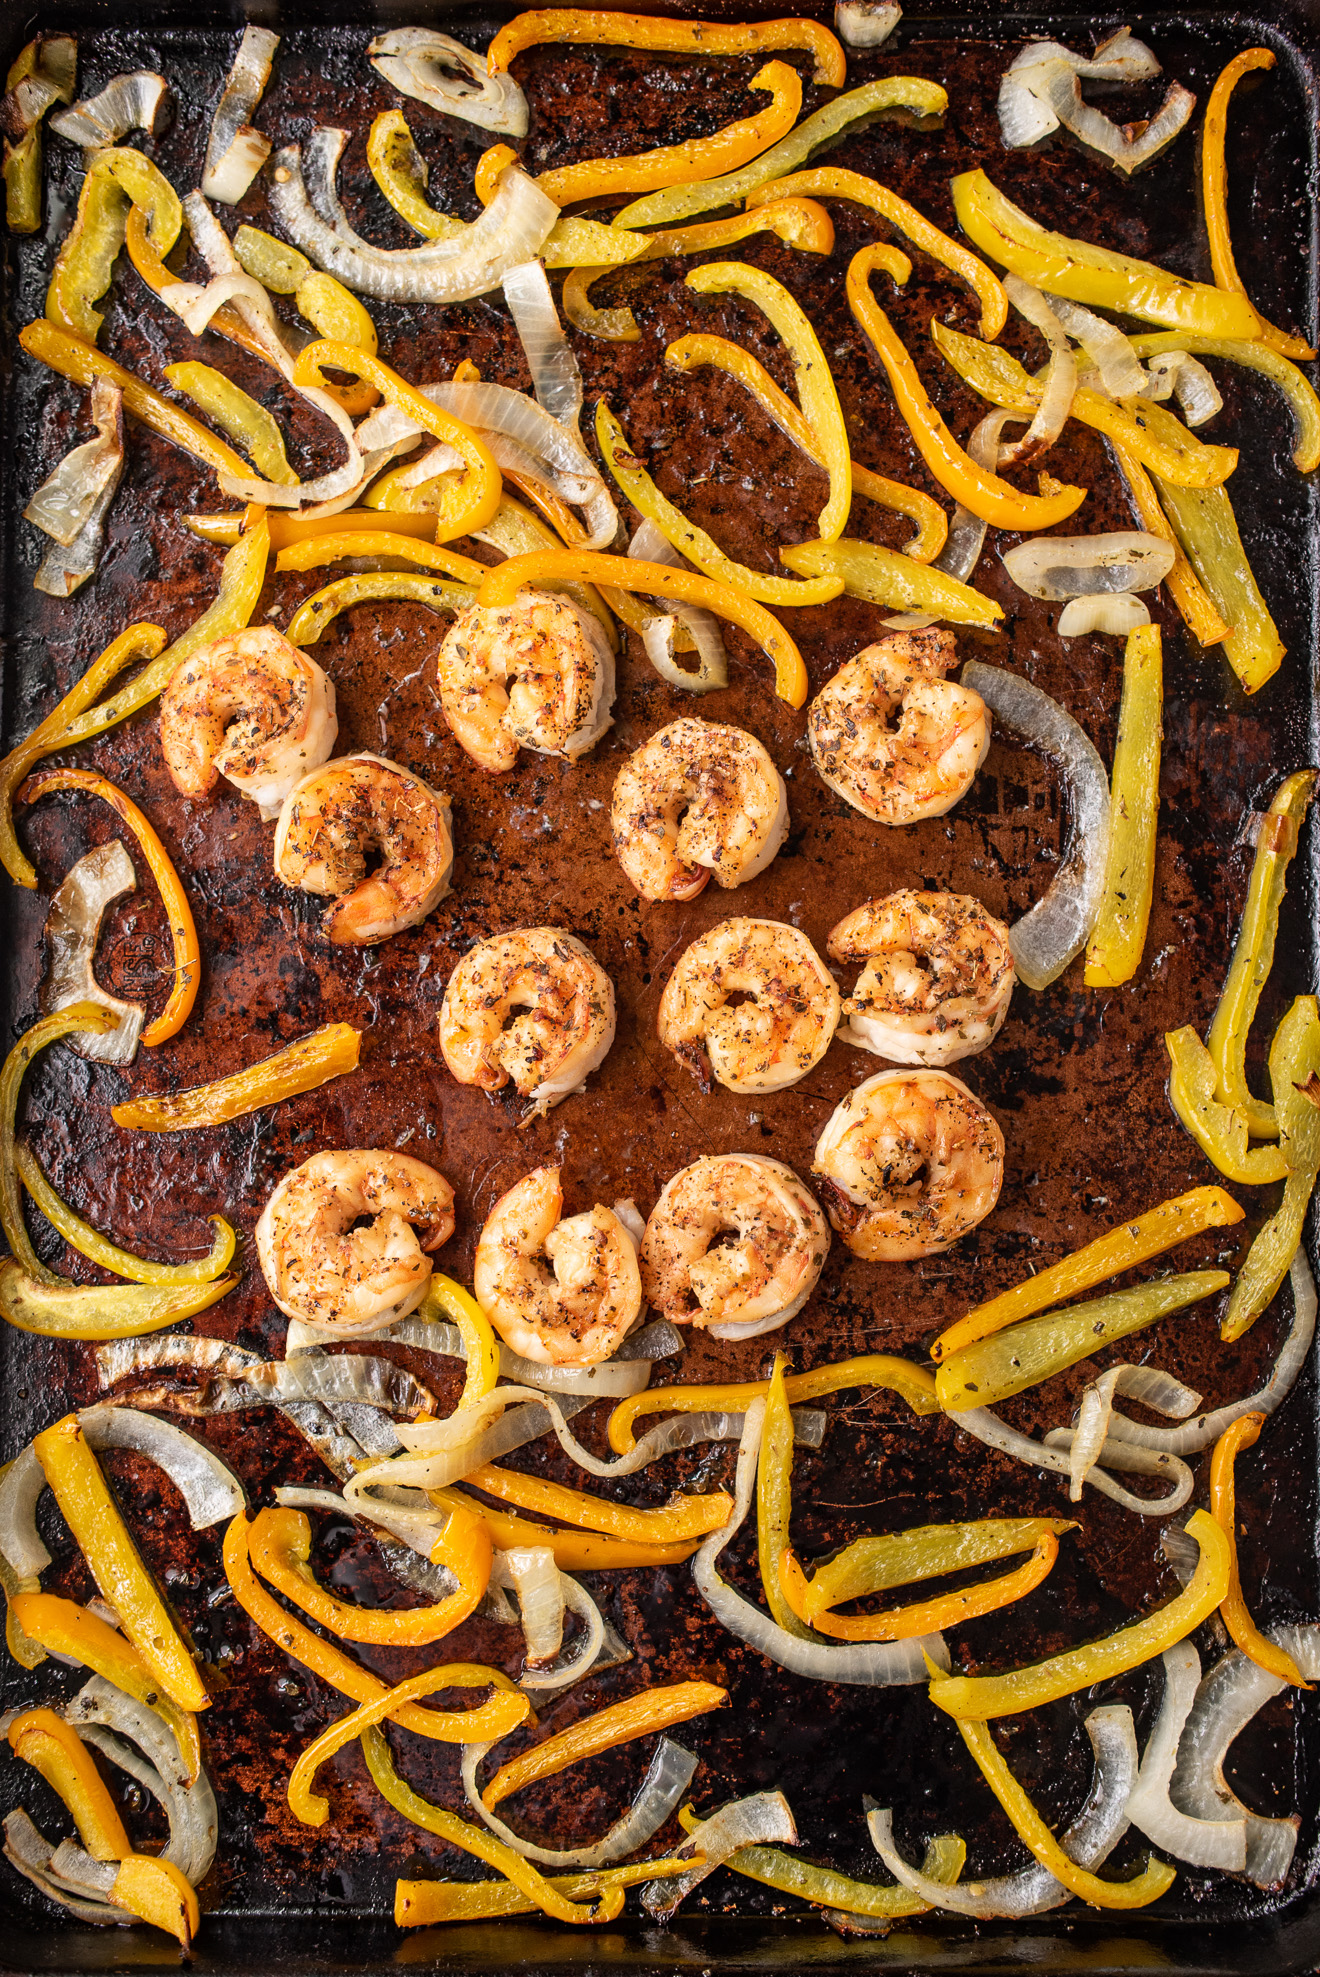 Shrimp, peppers and onions on a sheet tray